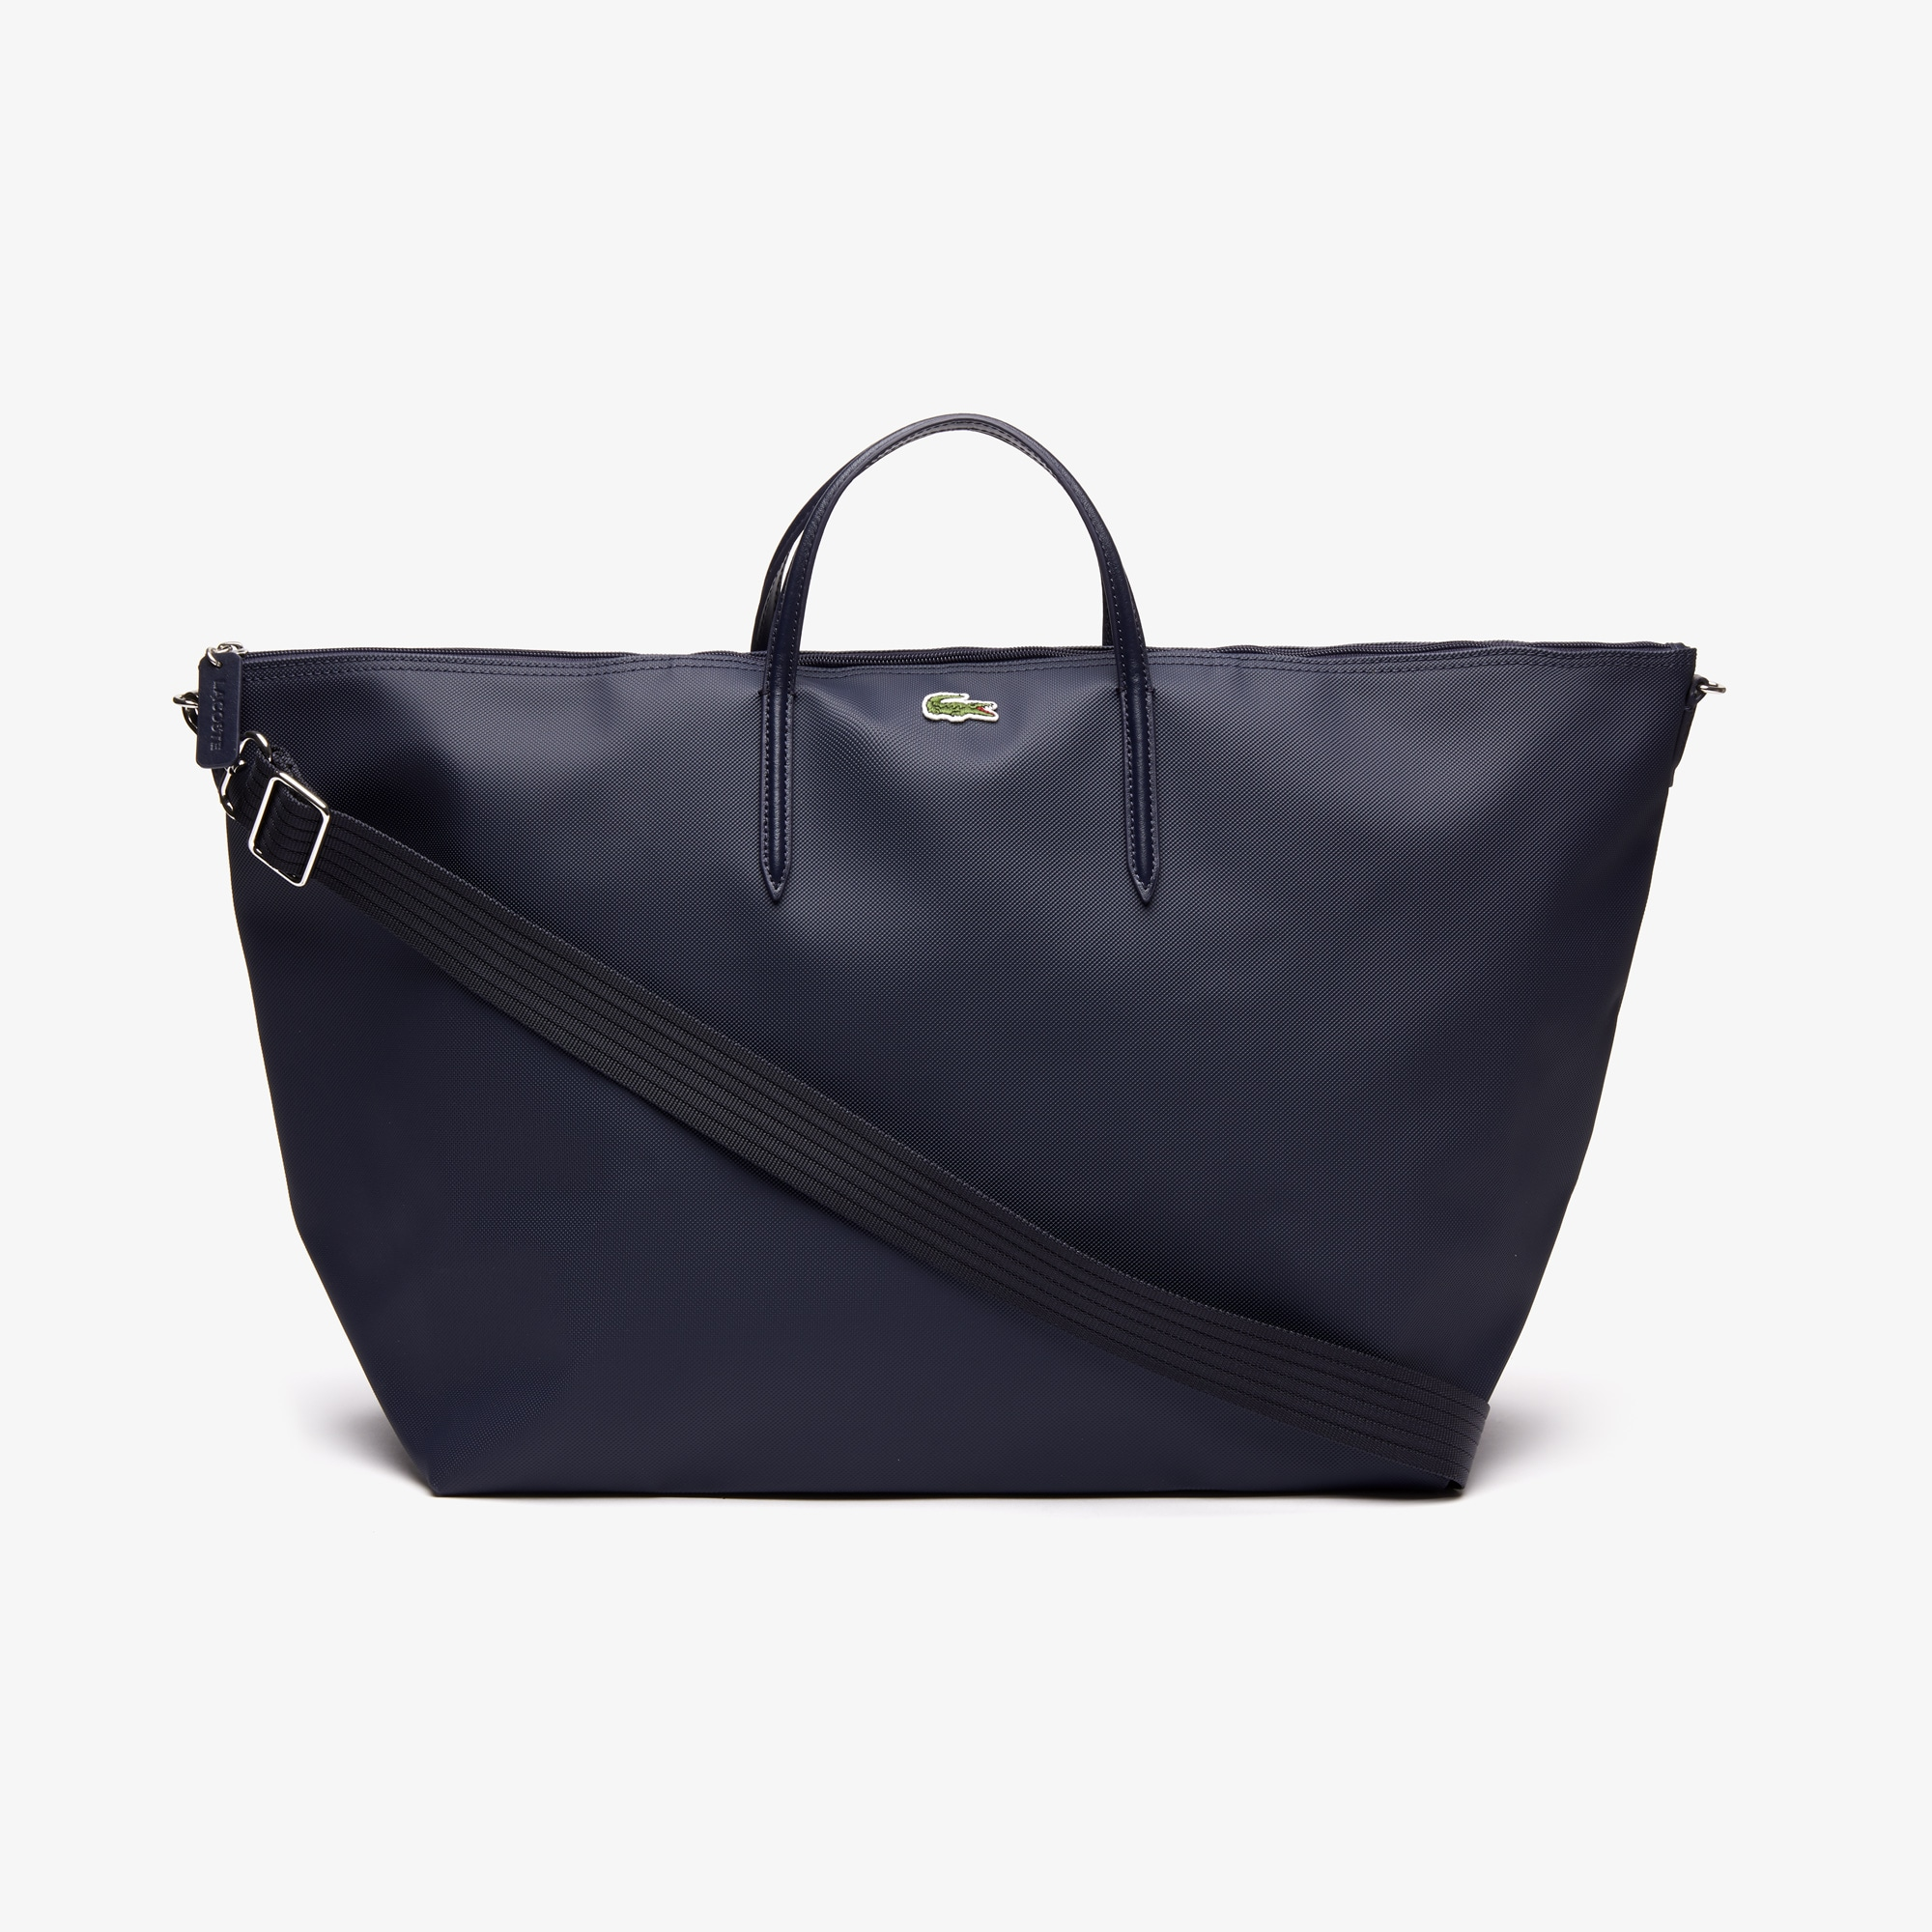 Sac cabas week-end L.12.12 Concept uni